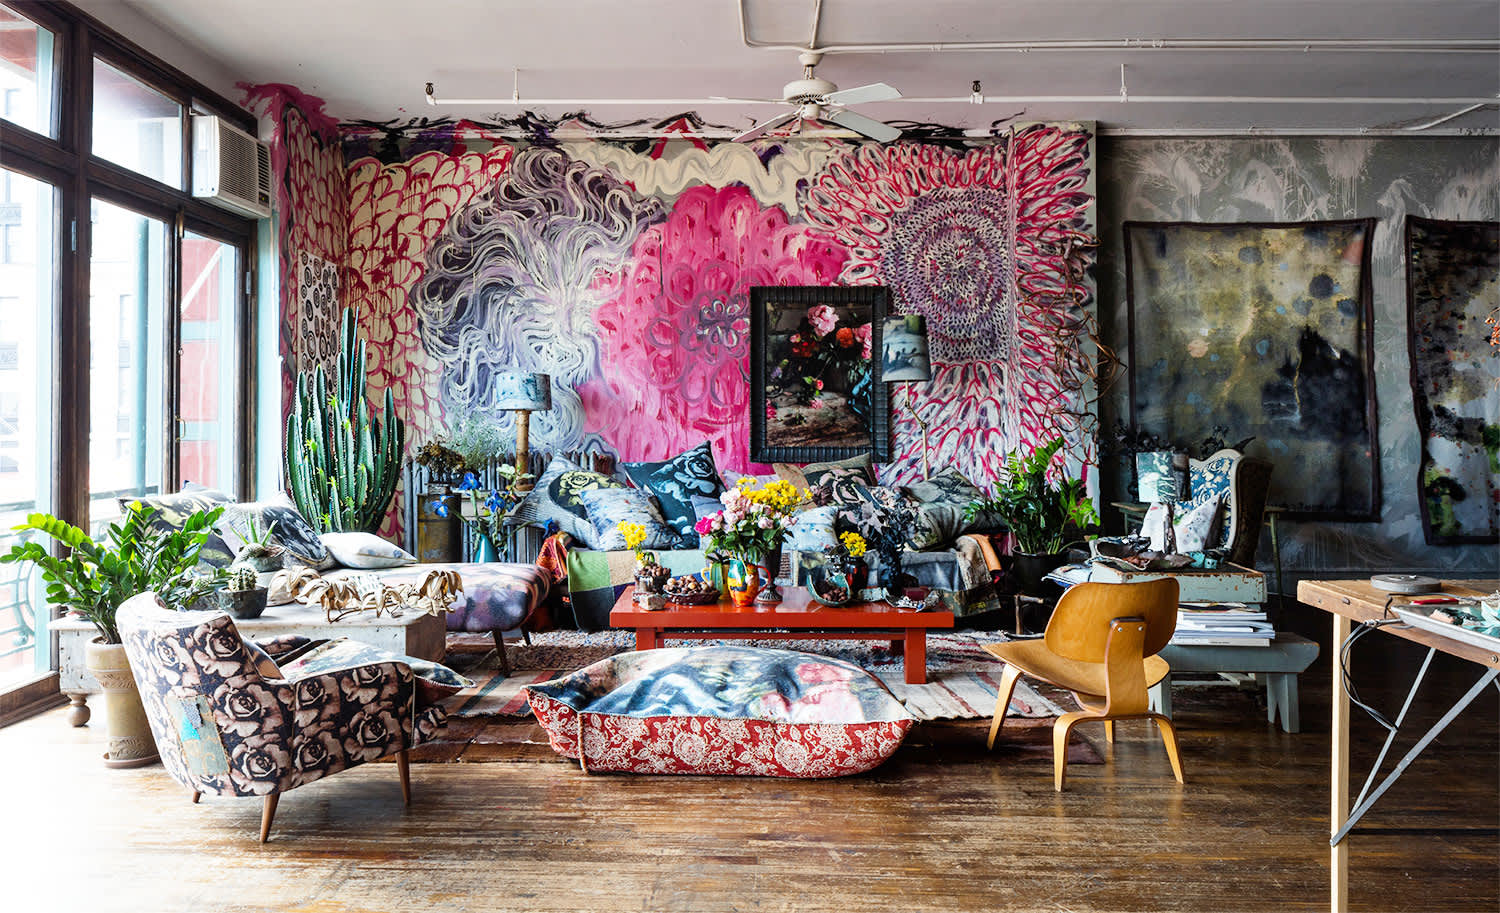 How Artists Live: Incredibly Creative Homes Like Nothing You've Seen Before